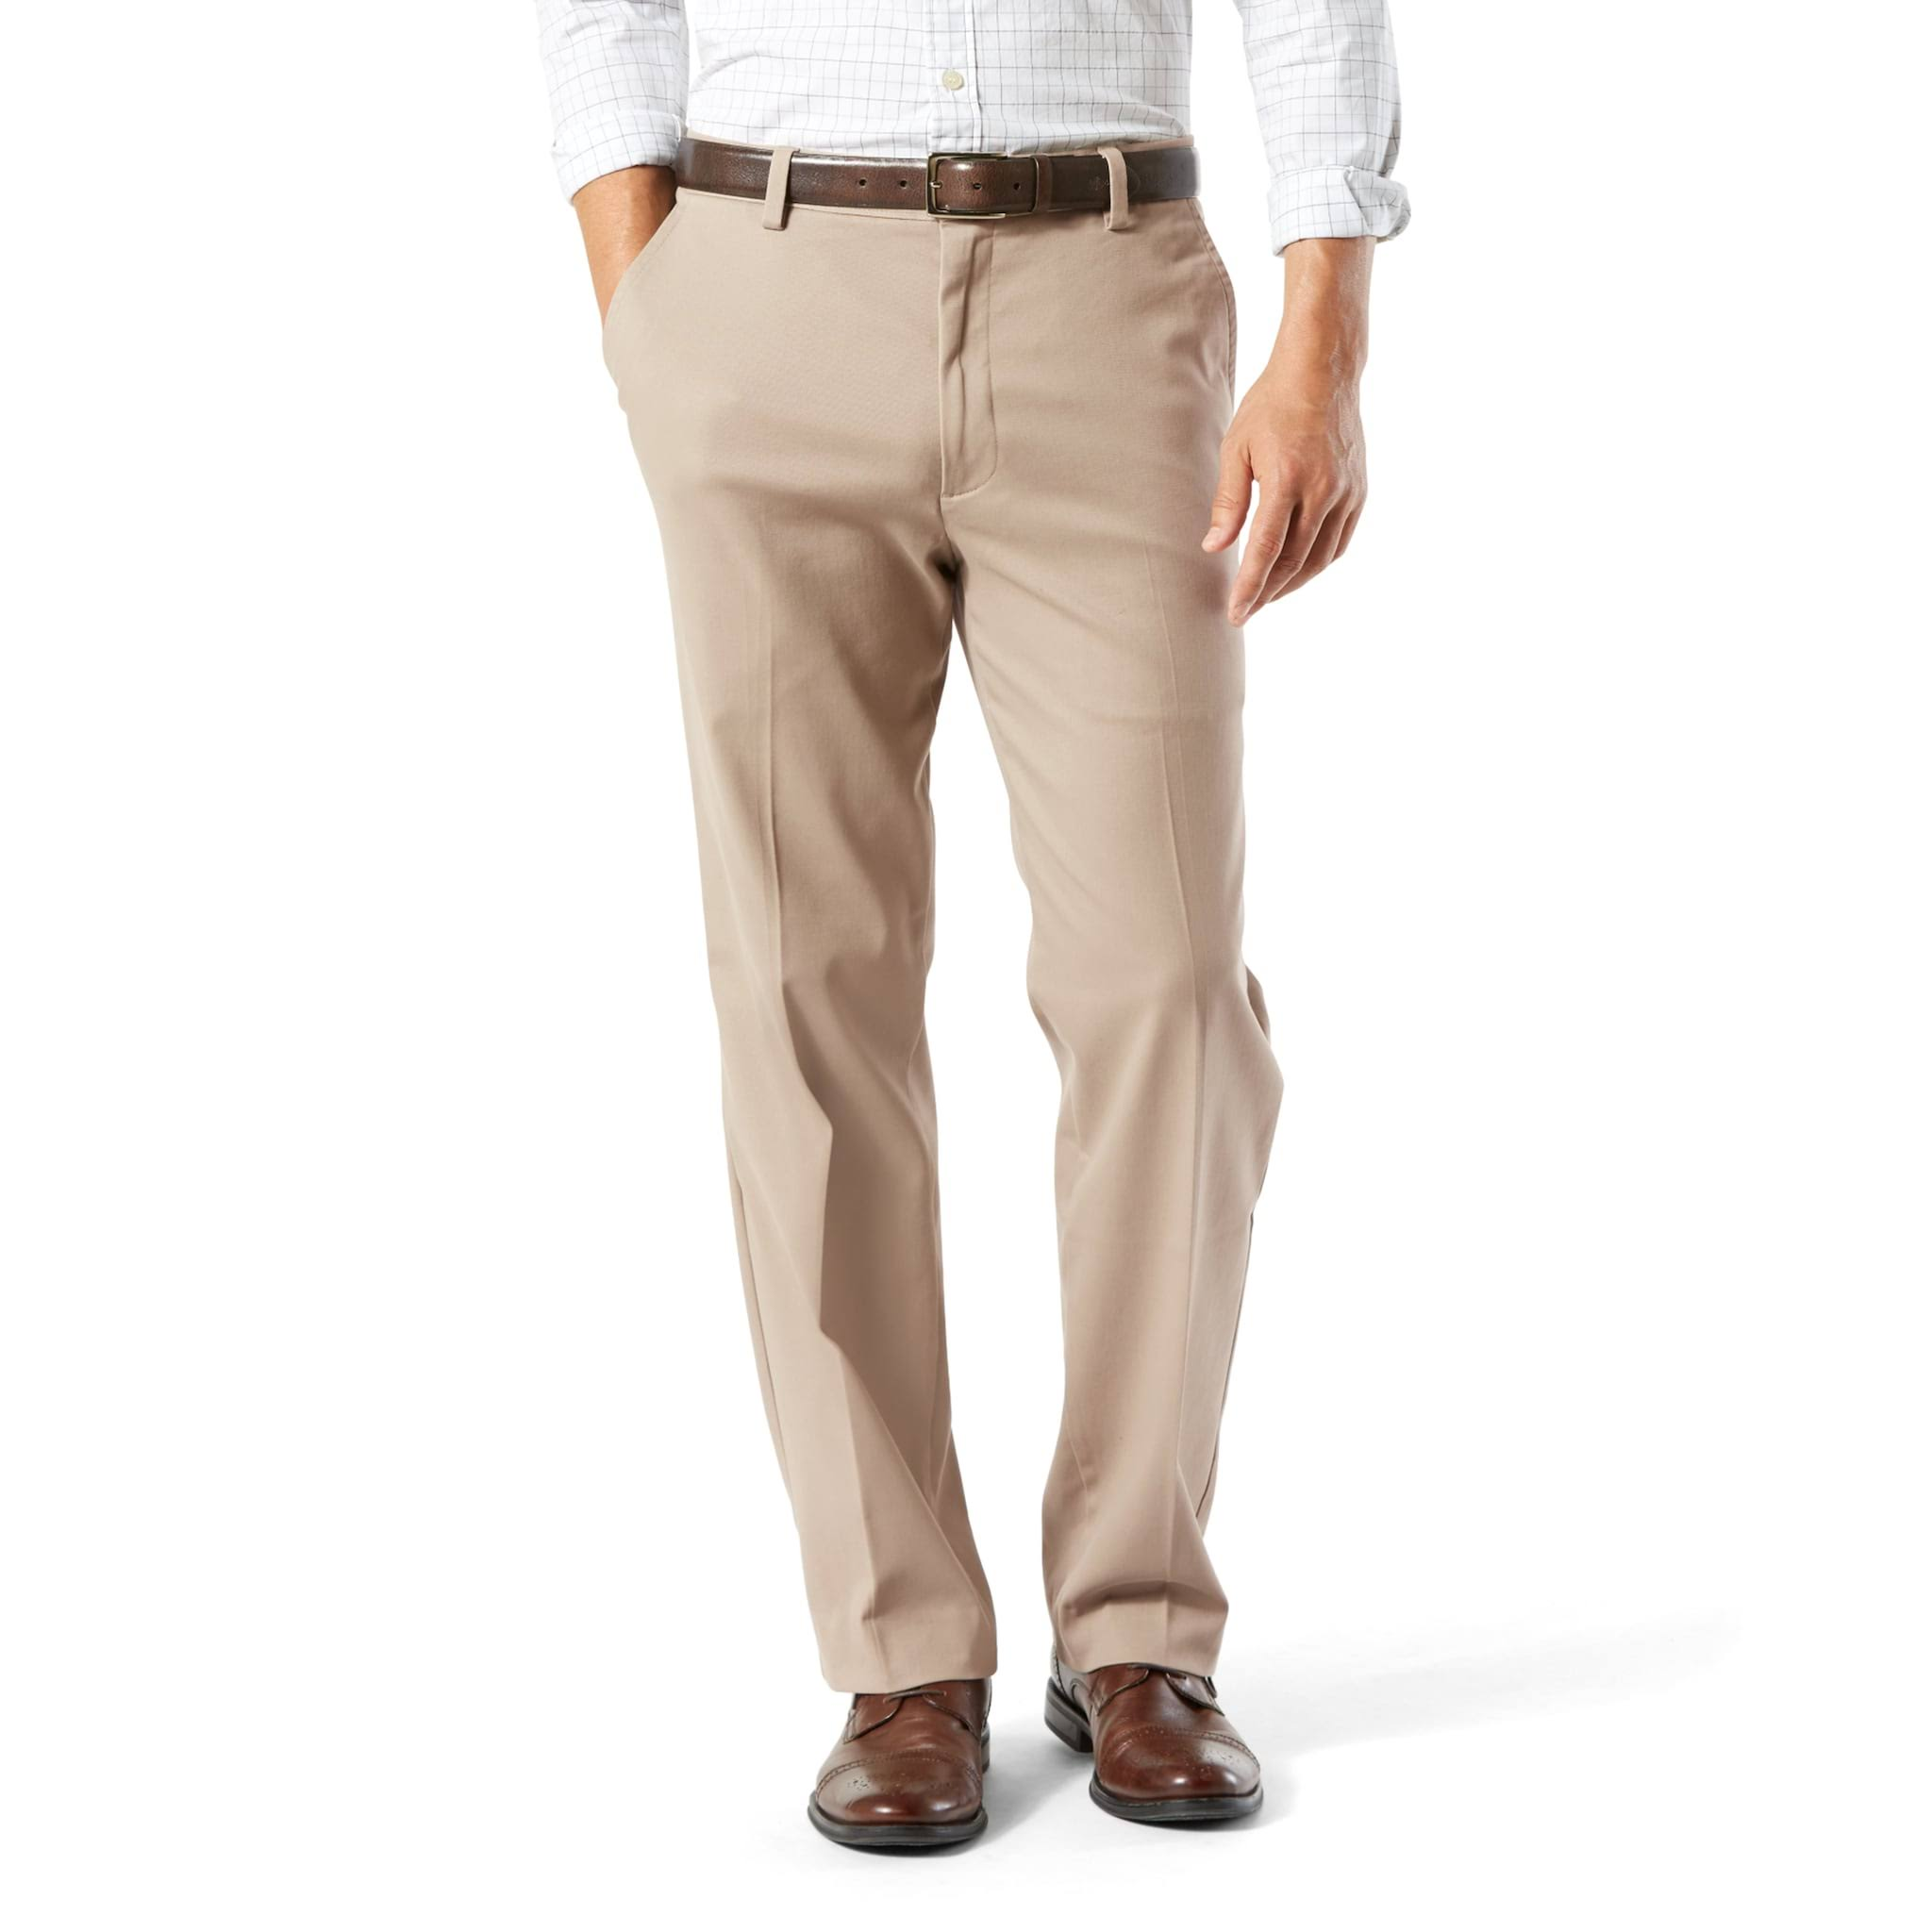 Men's Dockers Stretch Easy Khaki D3 Classic-Fit Flat-Front Pants, Dark Beige